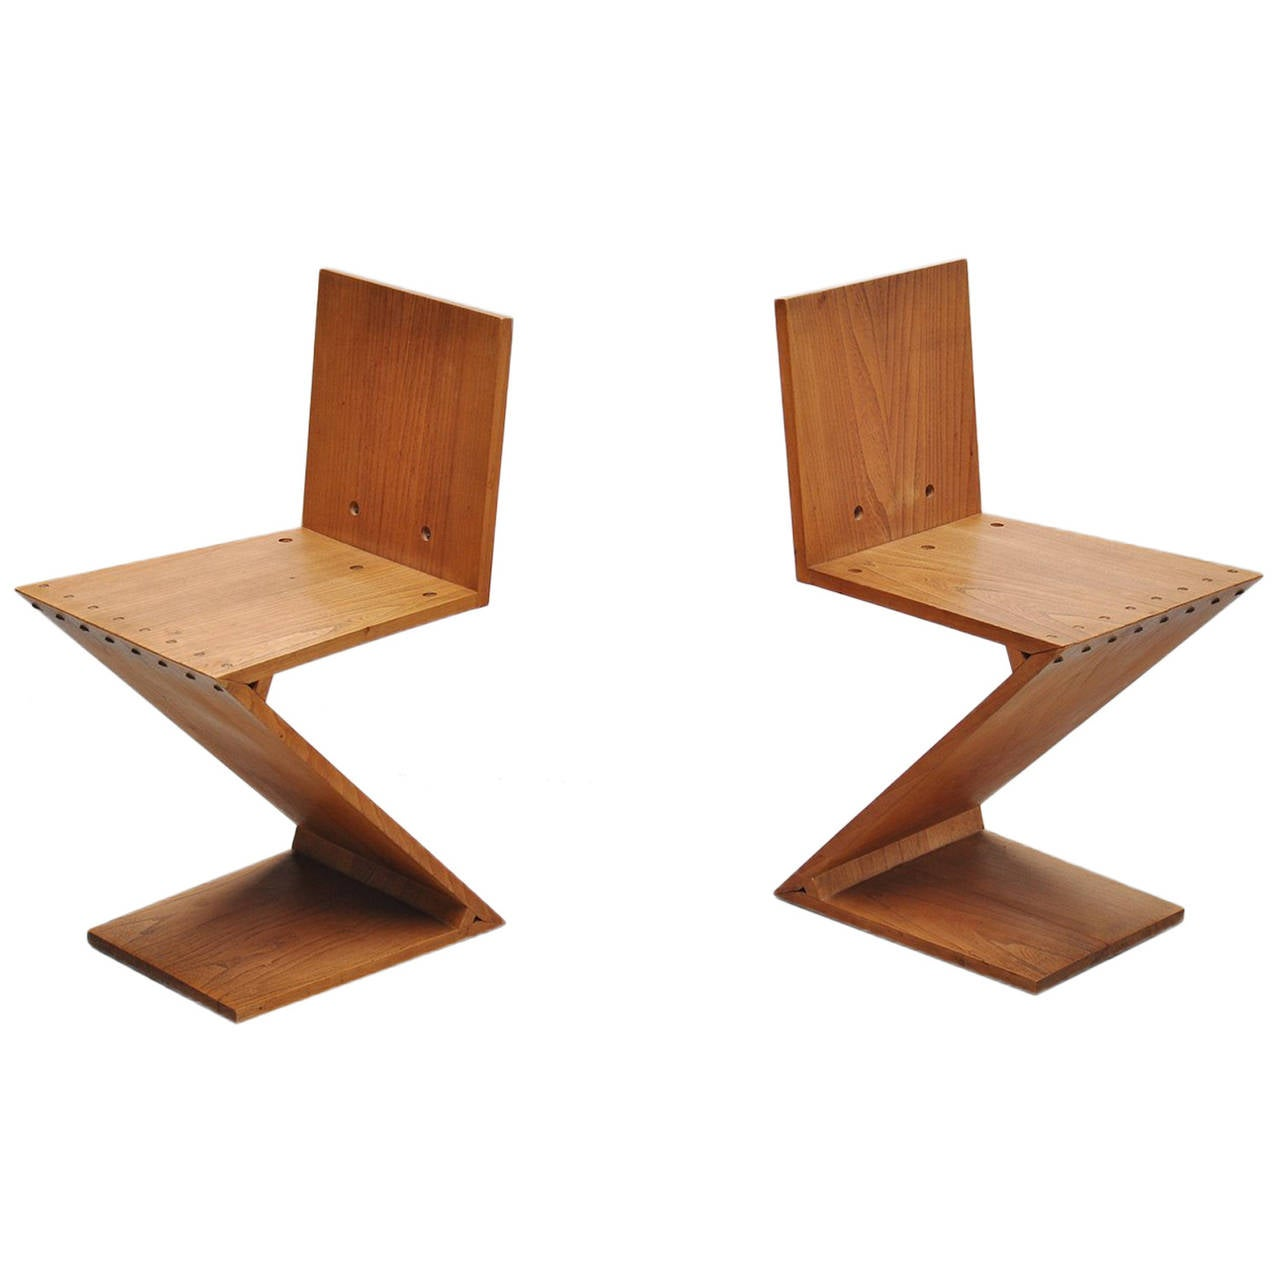 gerrit thomas rietveld zig zag chairs gerard van de groenekan 1950 for sale at 1stdibs. Black Bedroom Furniture Sets. Home Design Ideas